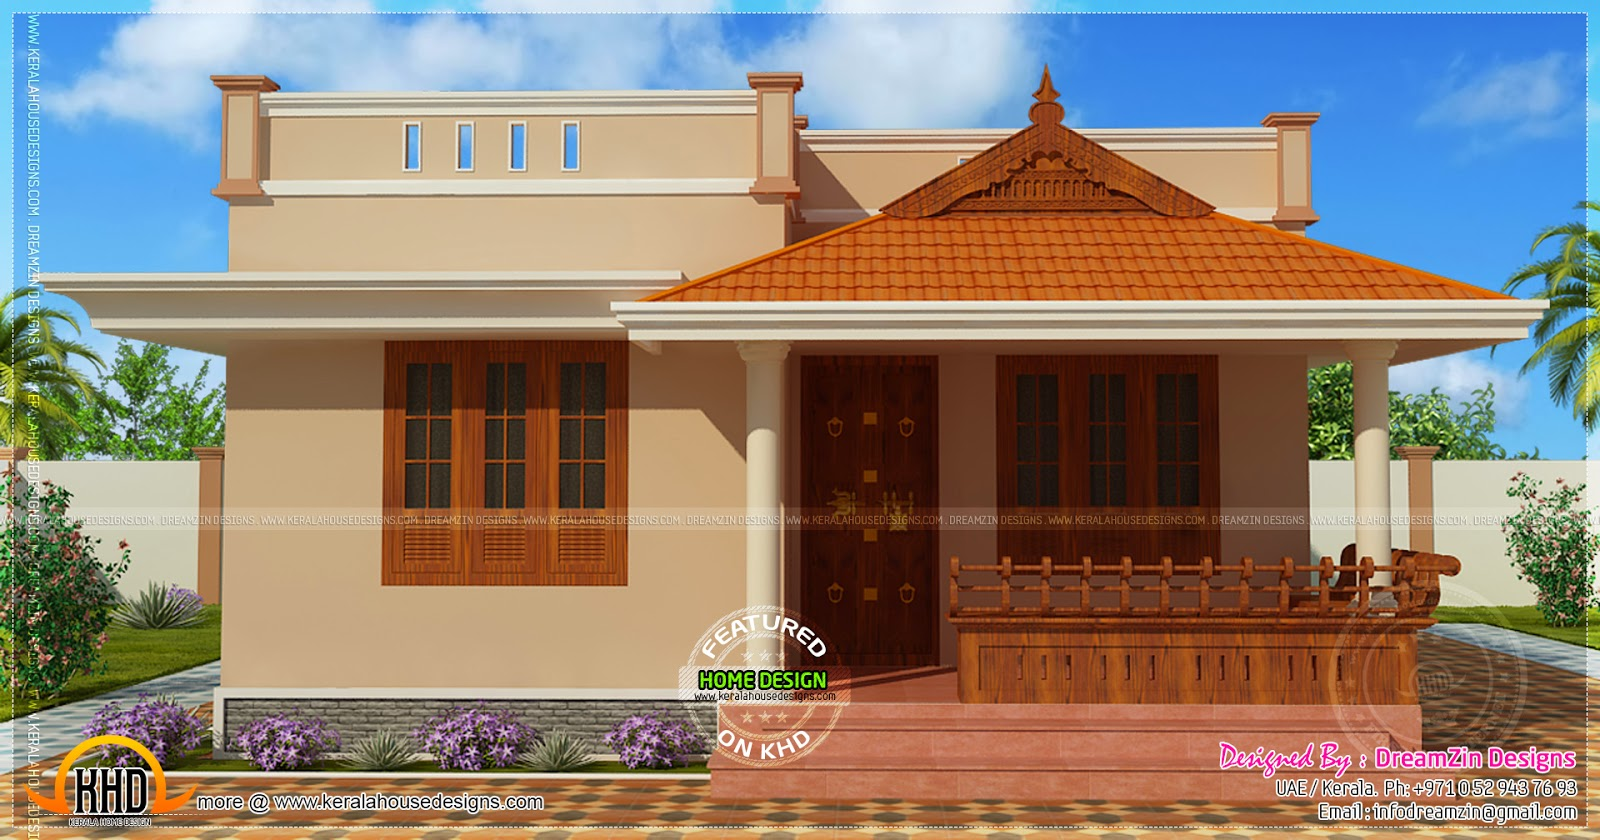 35 small and simple but beautiful house with roof deck for New small home designs in india